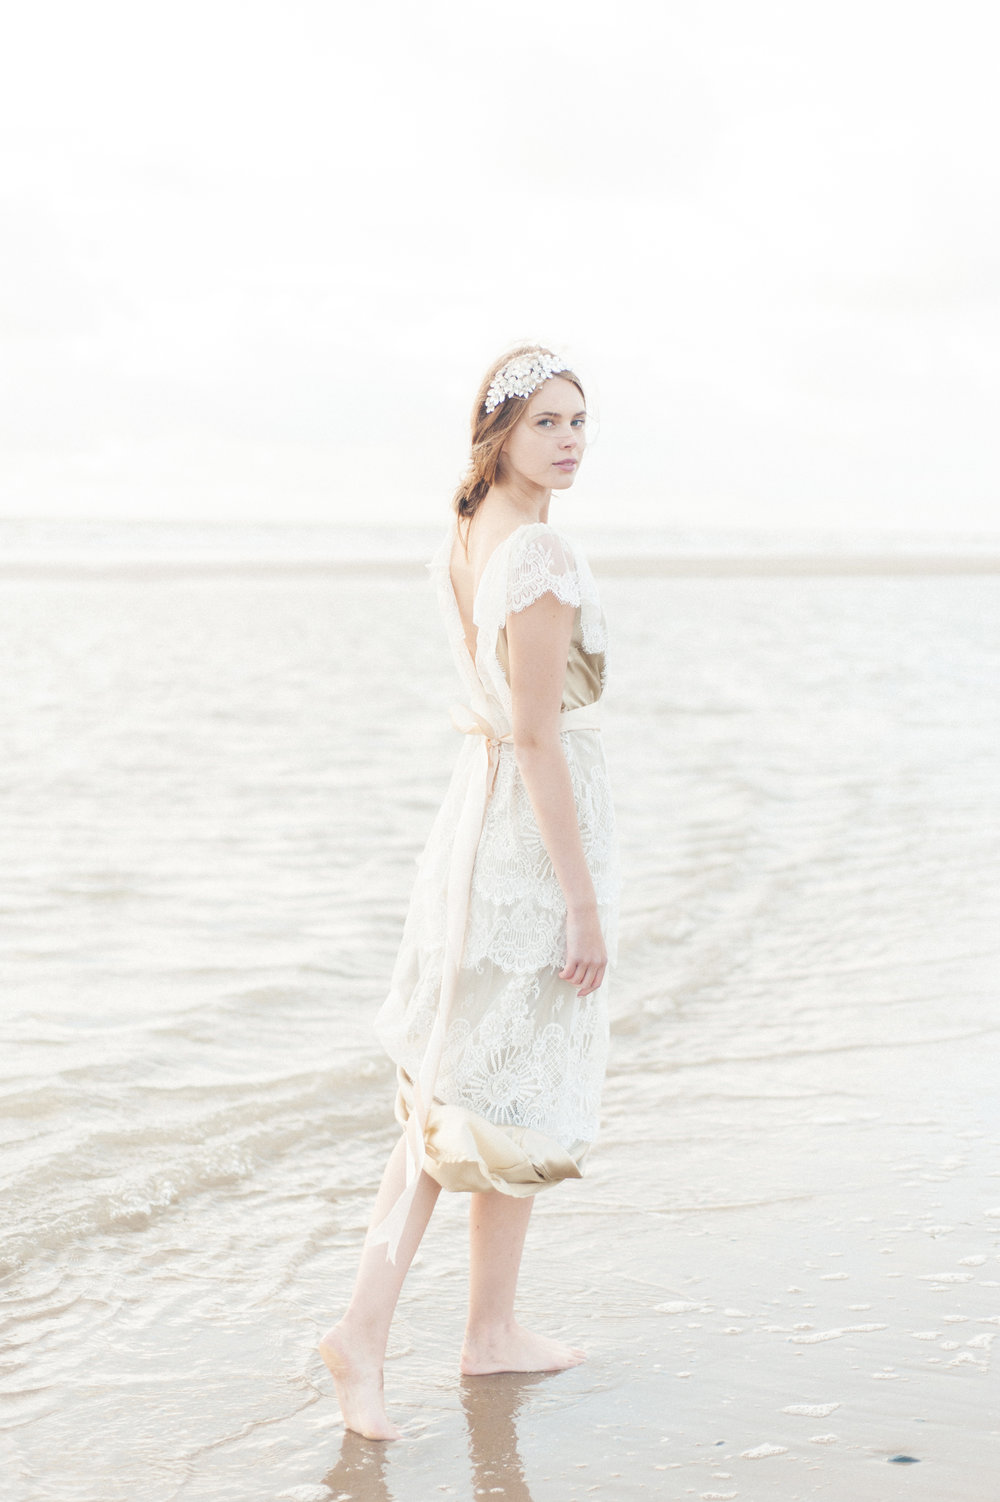 Kate-Beaumont-Wedding-Dresses-Formby-Beach-Emma-Pilkington-27.jpg